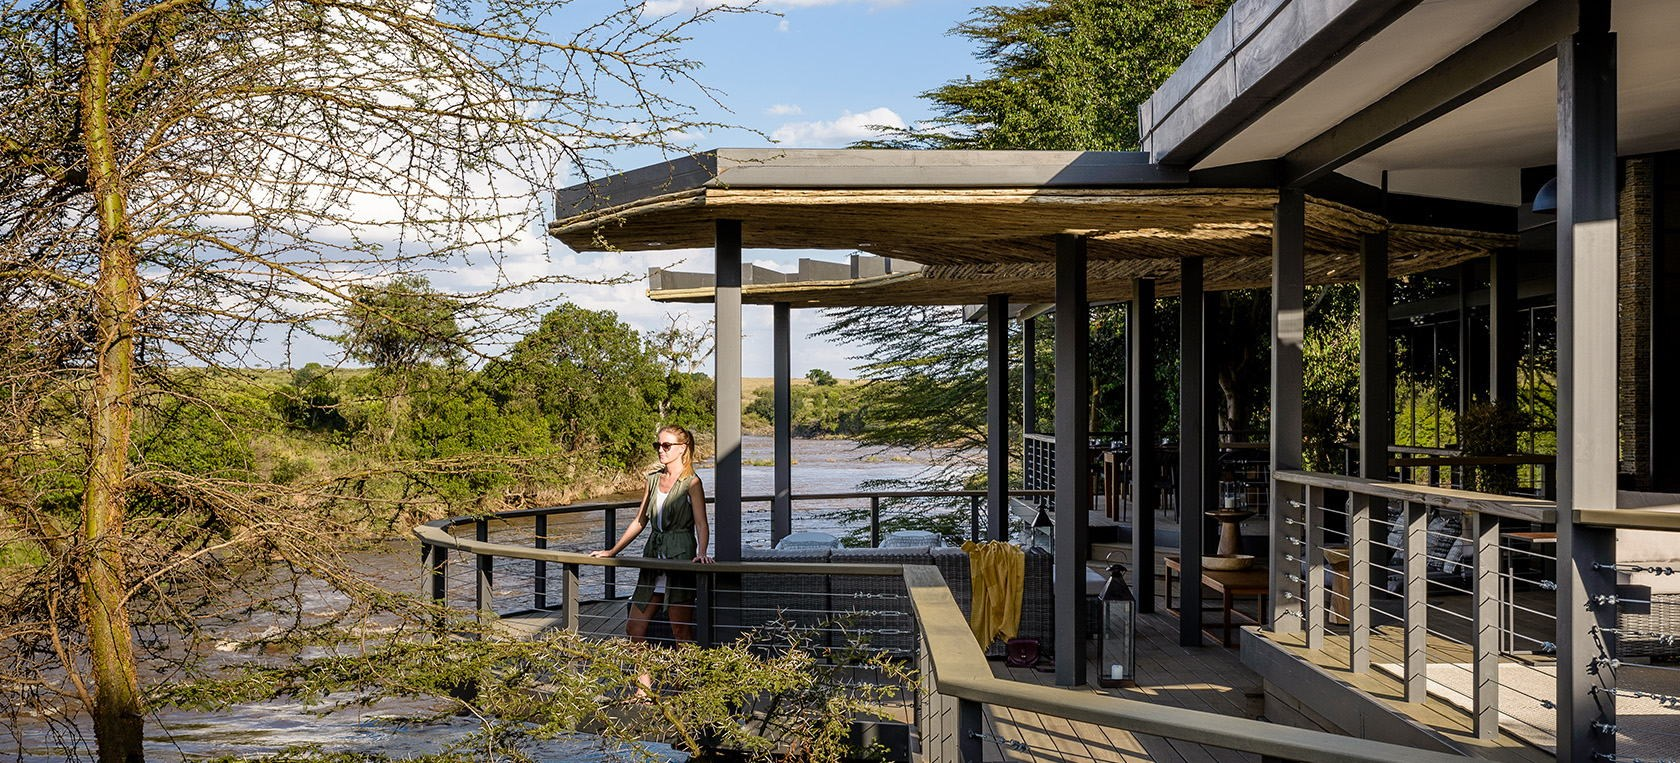 Top coolest hotel lodges in Kenya